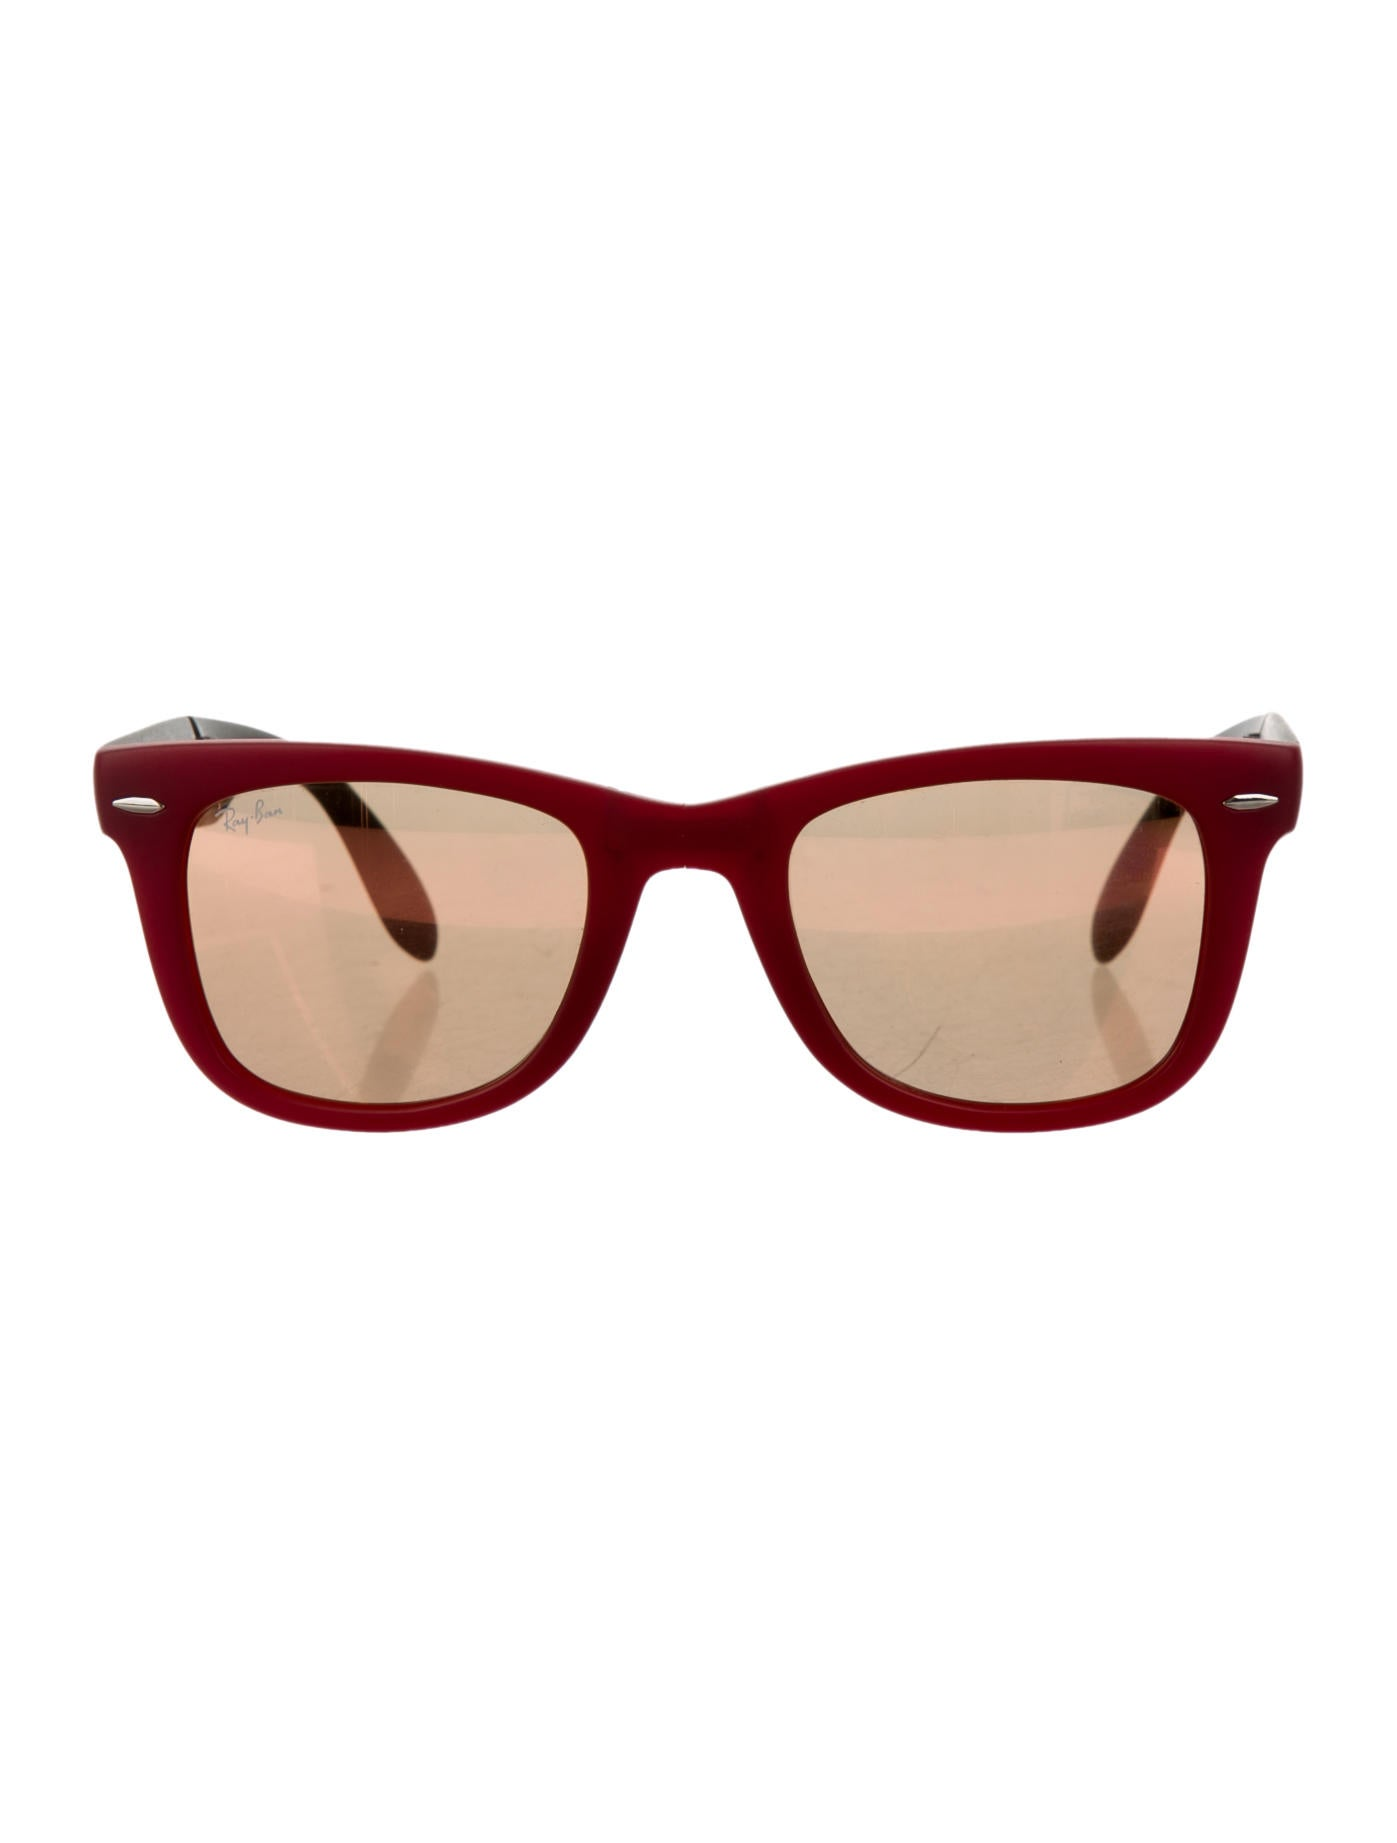 919cd49650c Fake Ray Ban Wayfarer Folding